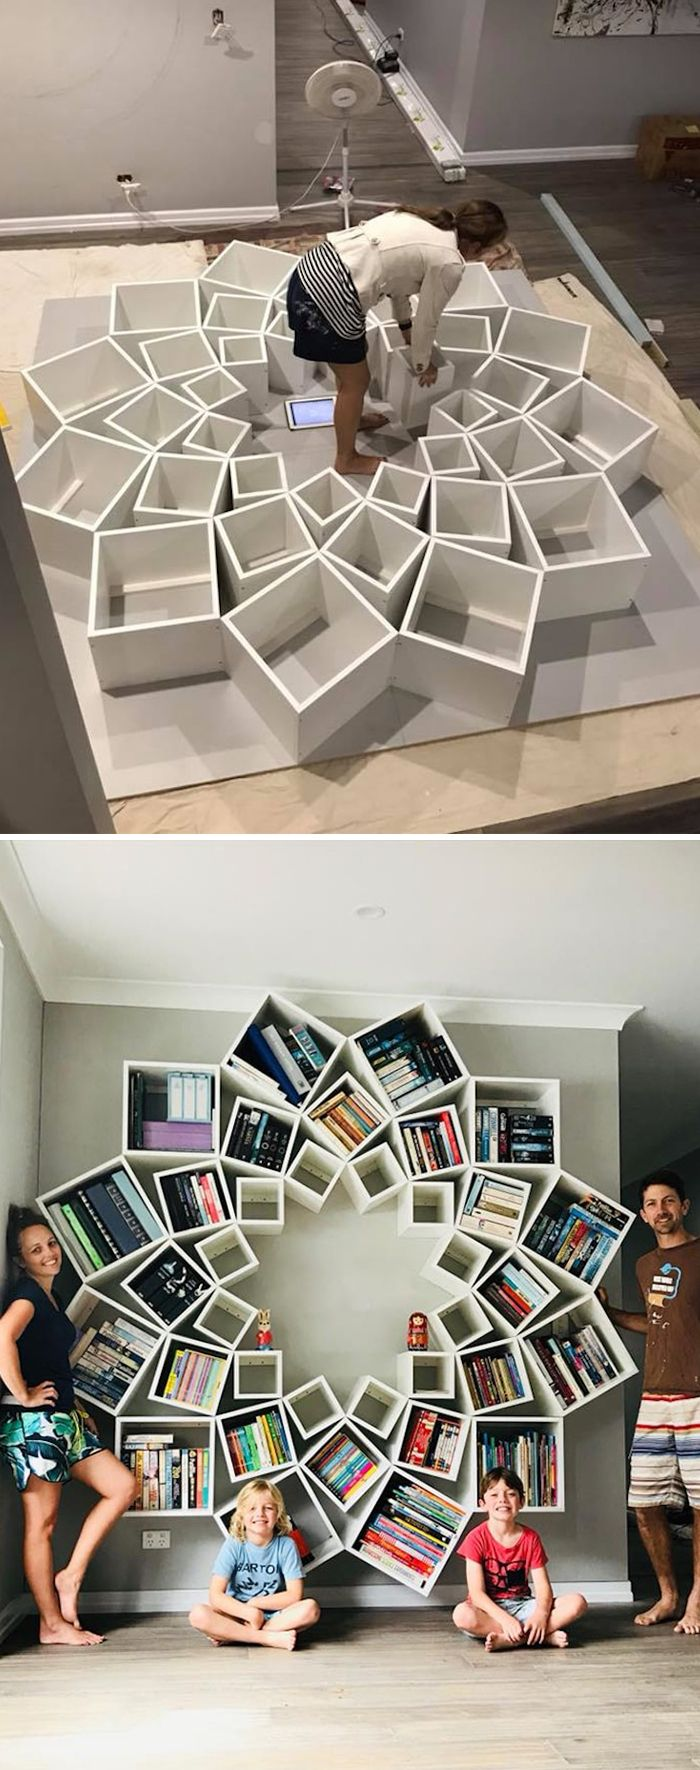 Diy Pinterest Couple Builds Diy Bookshelf Together And It S A Pinterest Dream